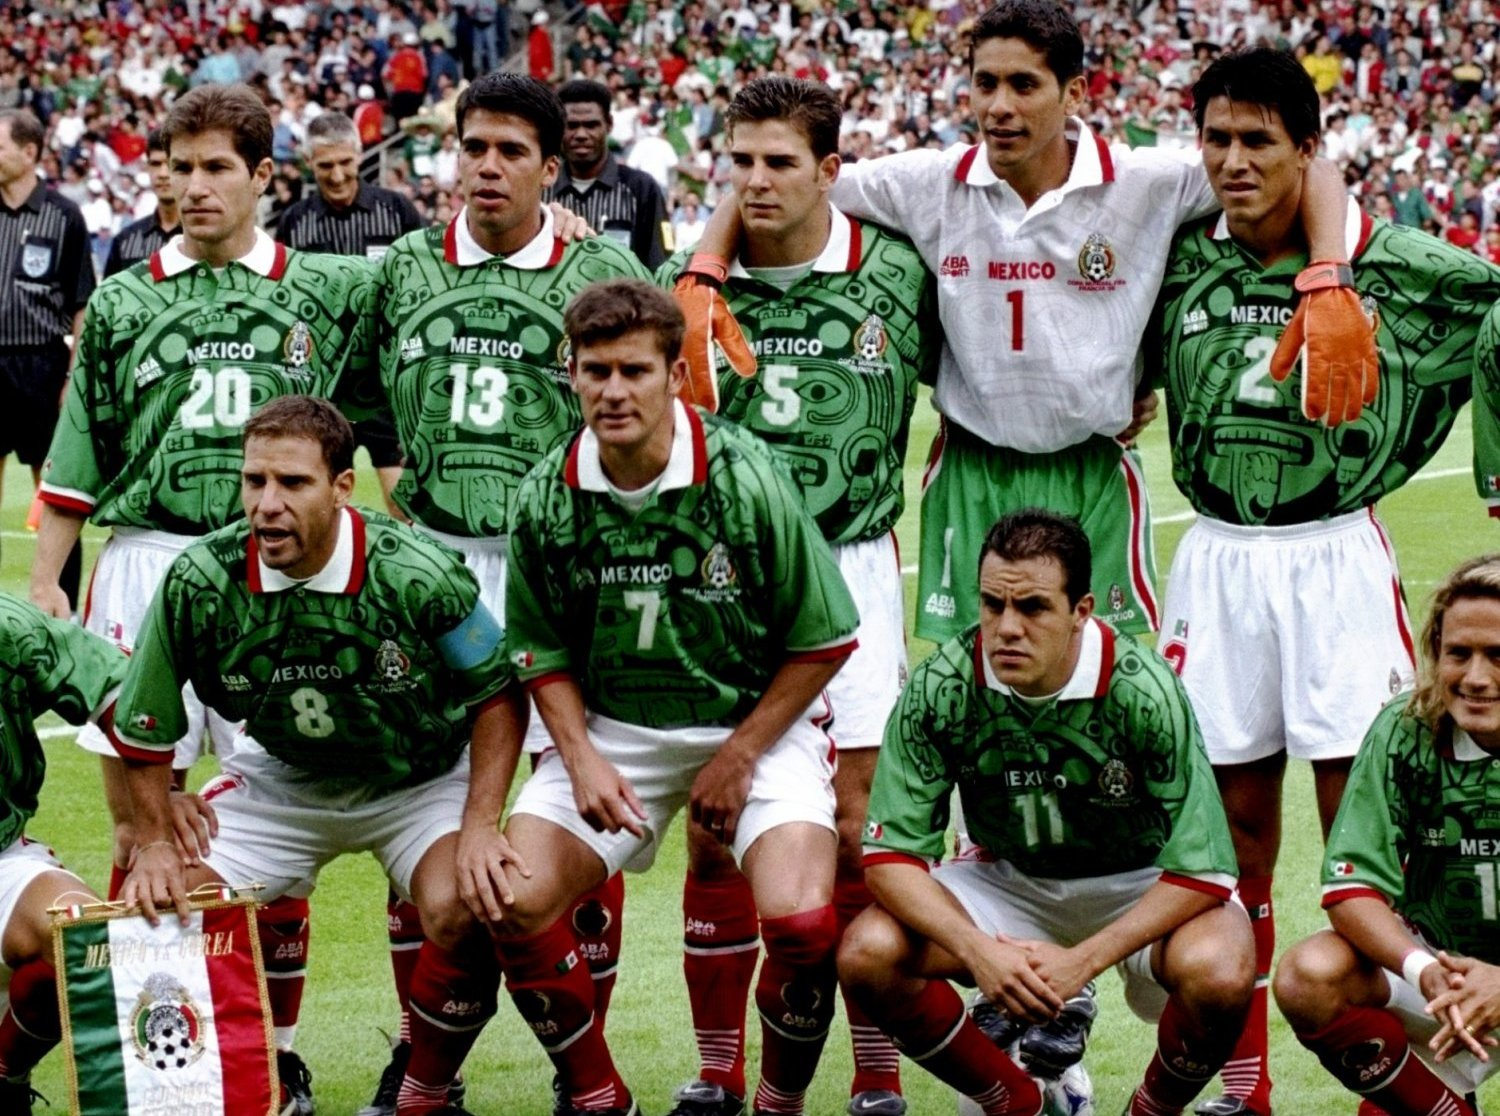 18 mexico 1998 jersey - worst soccer uniforms all time - worst football kits all time